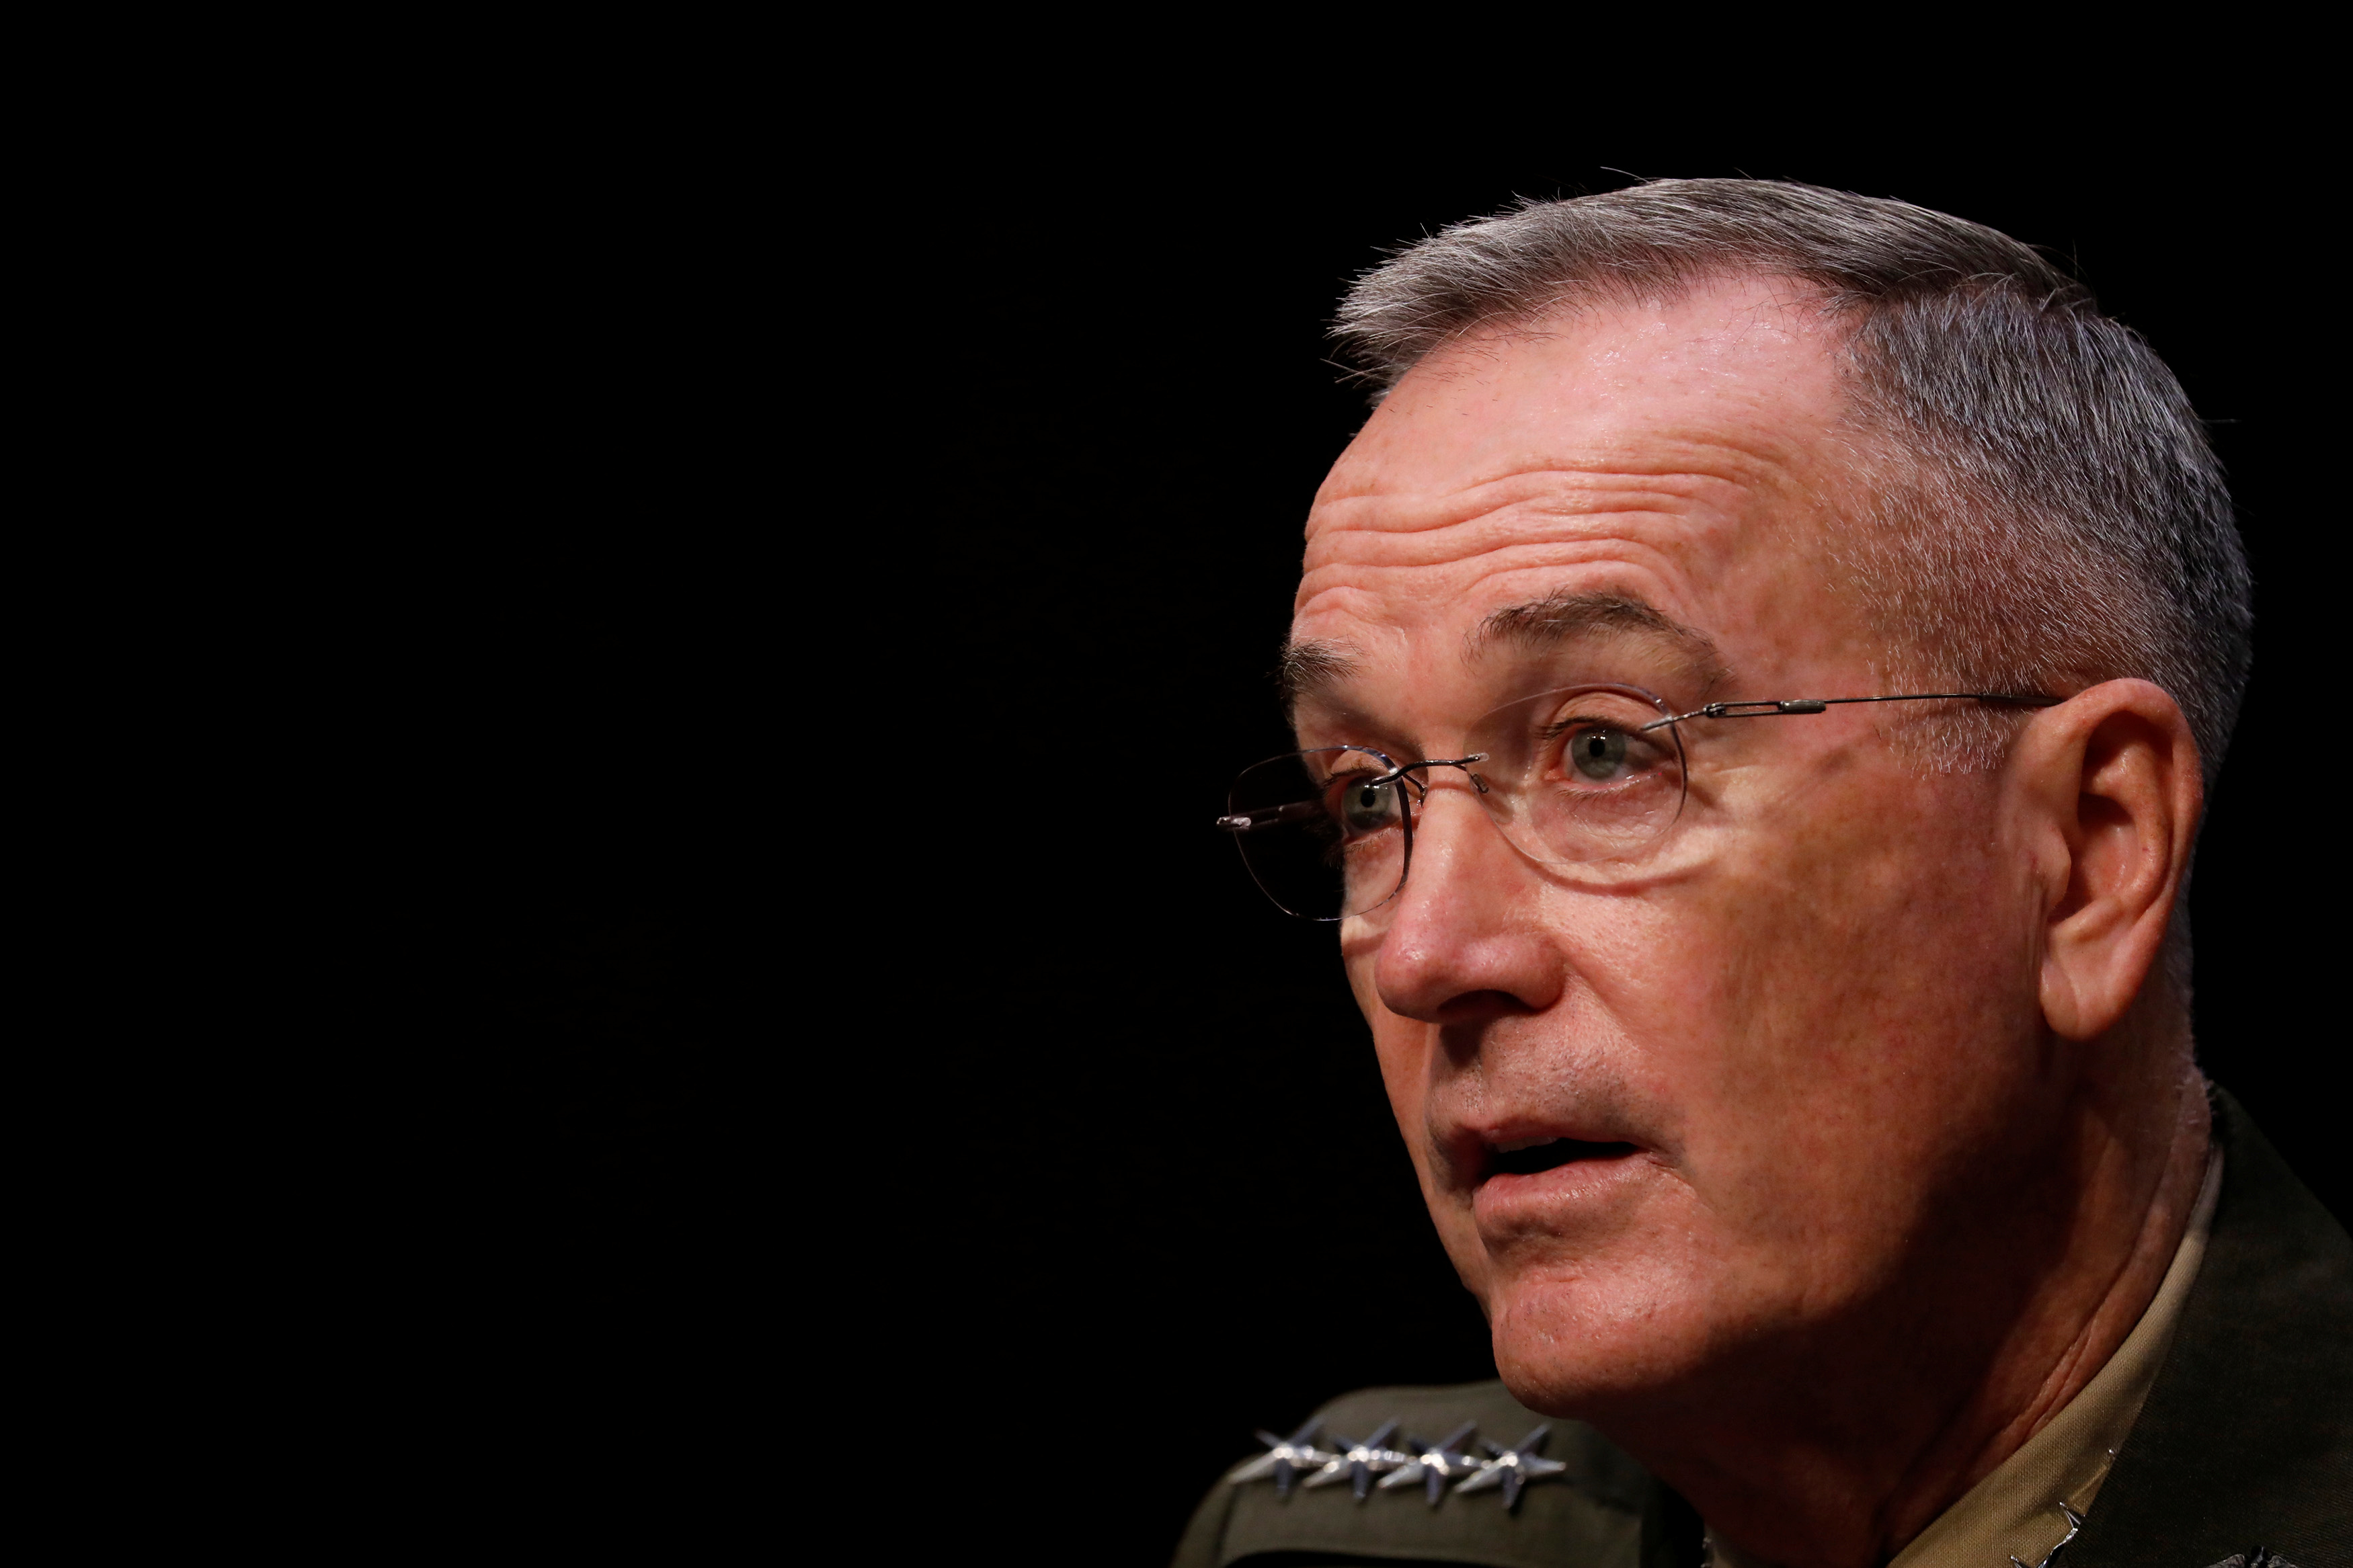 General Joseph Dunford, Chairman of the Joint Chiefs of Staff, testifies before the Senate Armed Services Committee on Capitol Hill in Washington, U.S. September 26, 2017. REUTERS/Aaron P. Bernstein